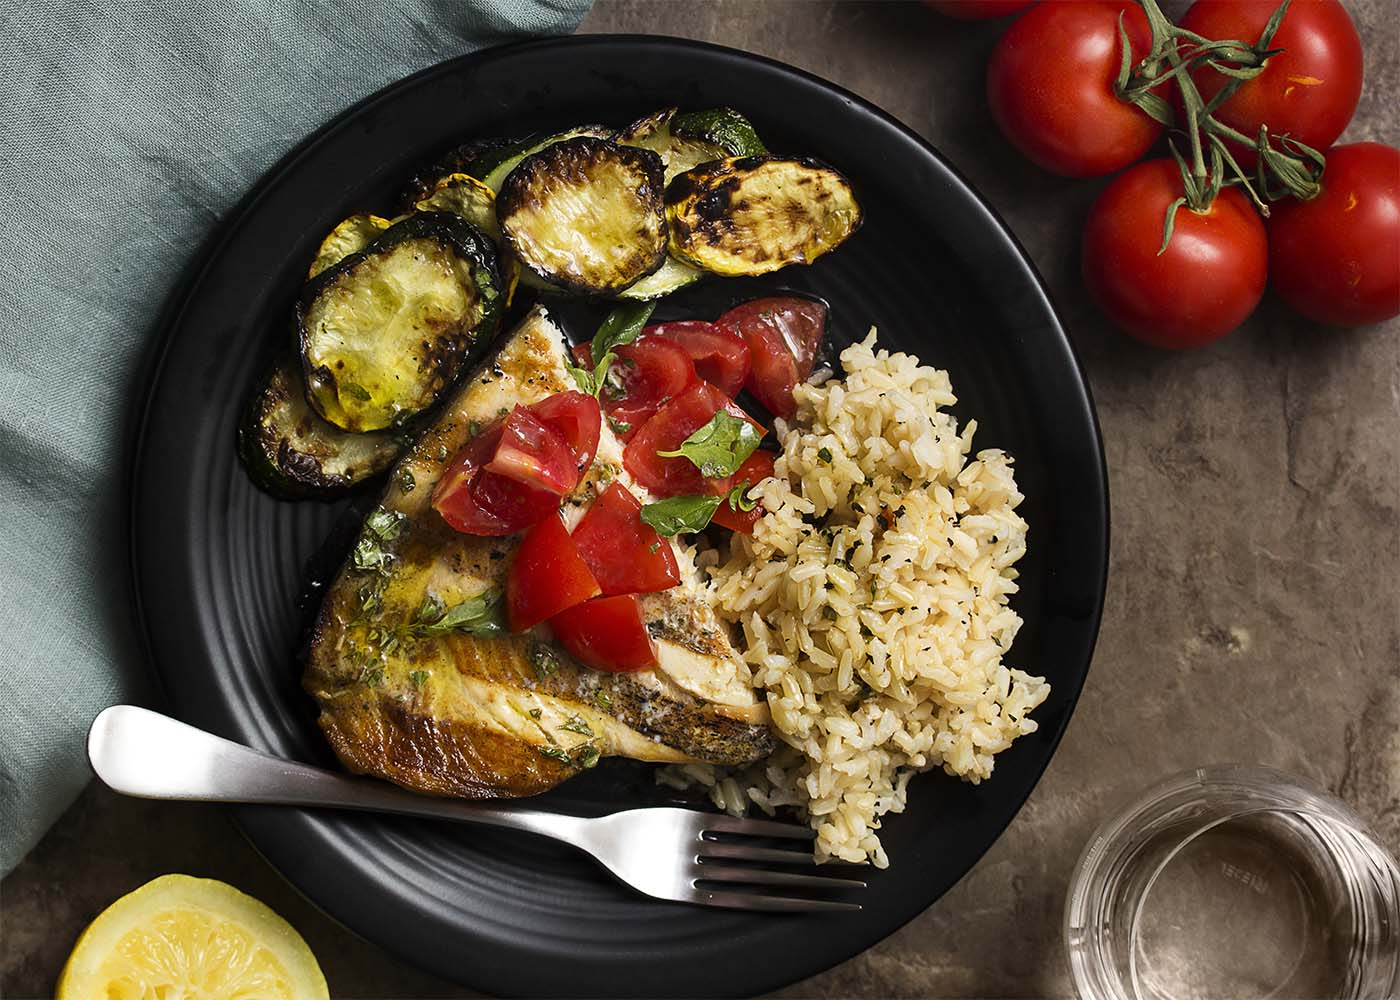 Top view of Sicilian swordfish, grilled summer squash, and rice on a black plate with a fork.